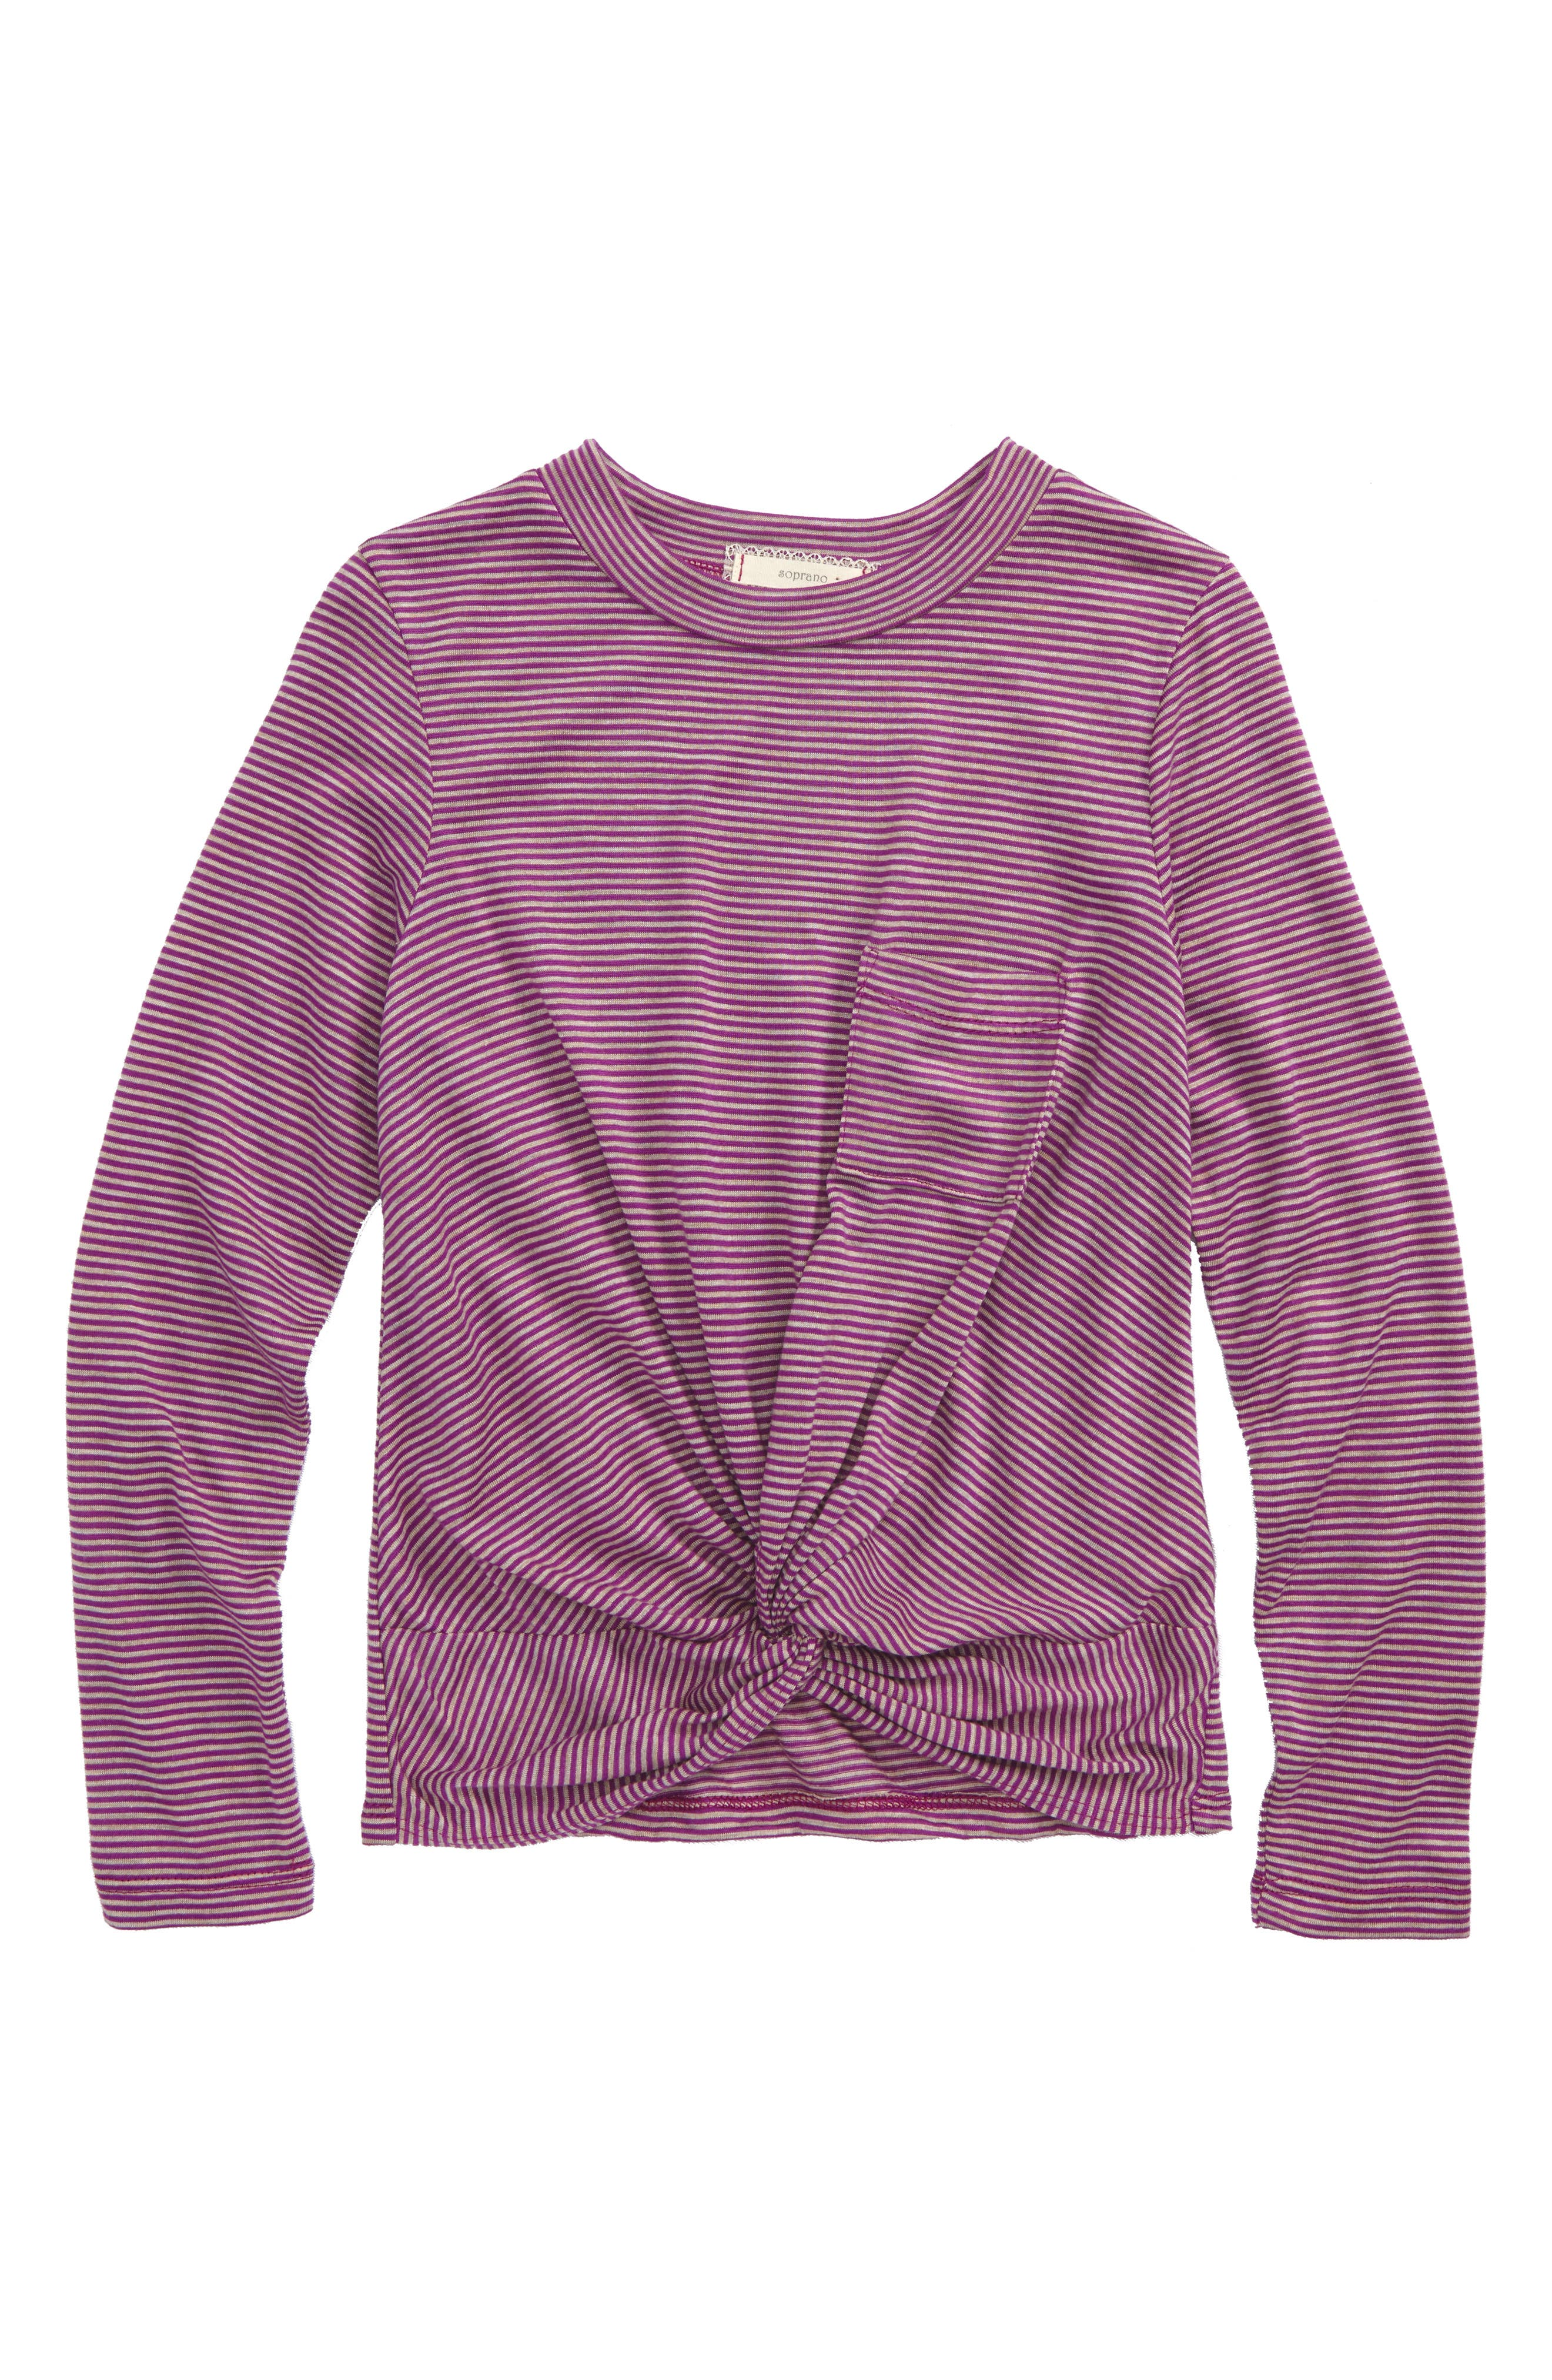 Soprano Knot Front Stripe Top (Big Girls)